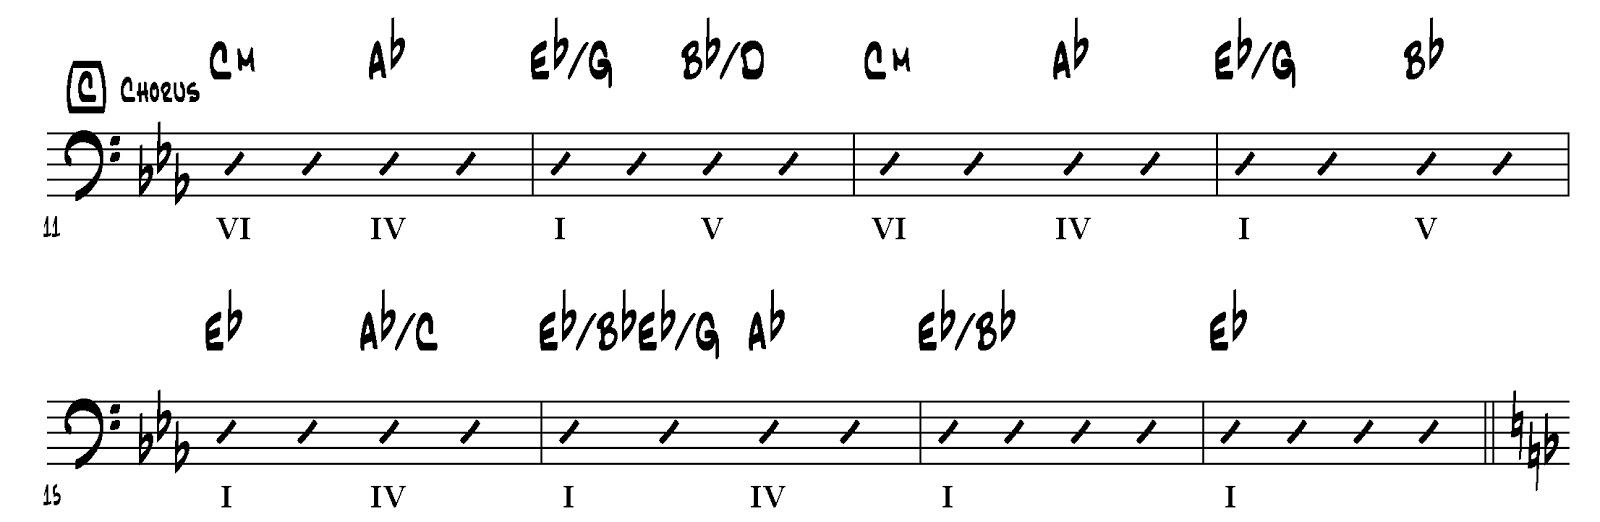 Four strings basslessons weekly basslines 130 you raise me up the chorus dramatically starts with the relative minor chord cm and ends with the more peaceful major tonic eb hexwebz Gallery